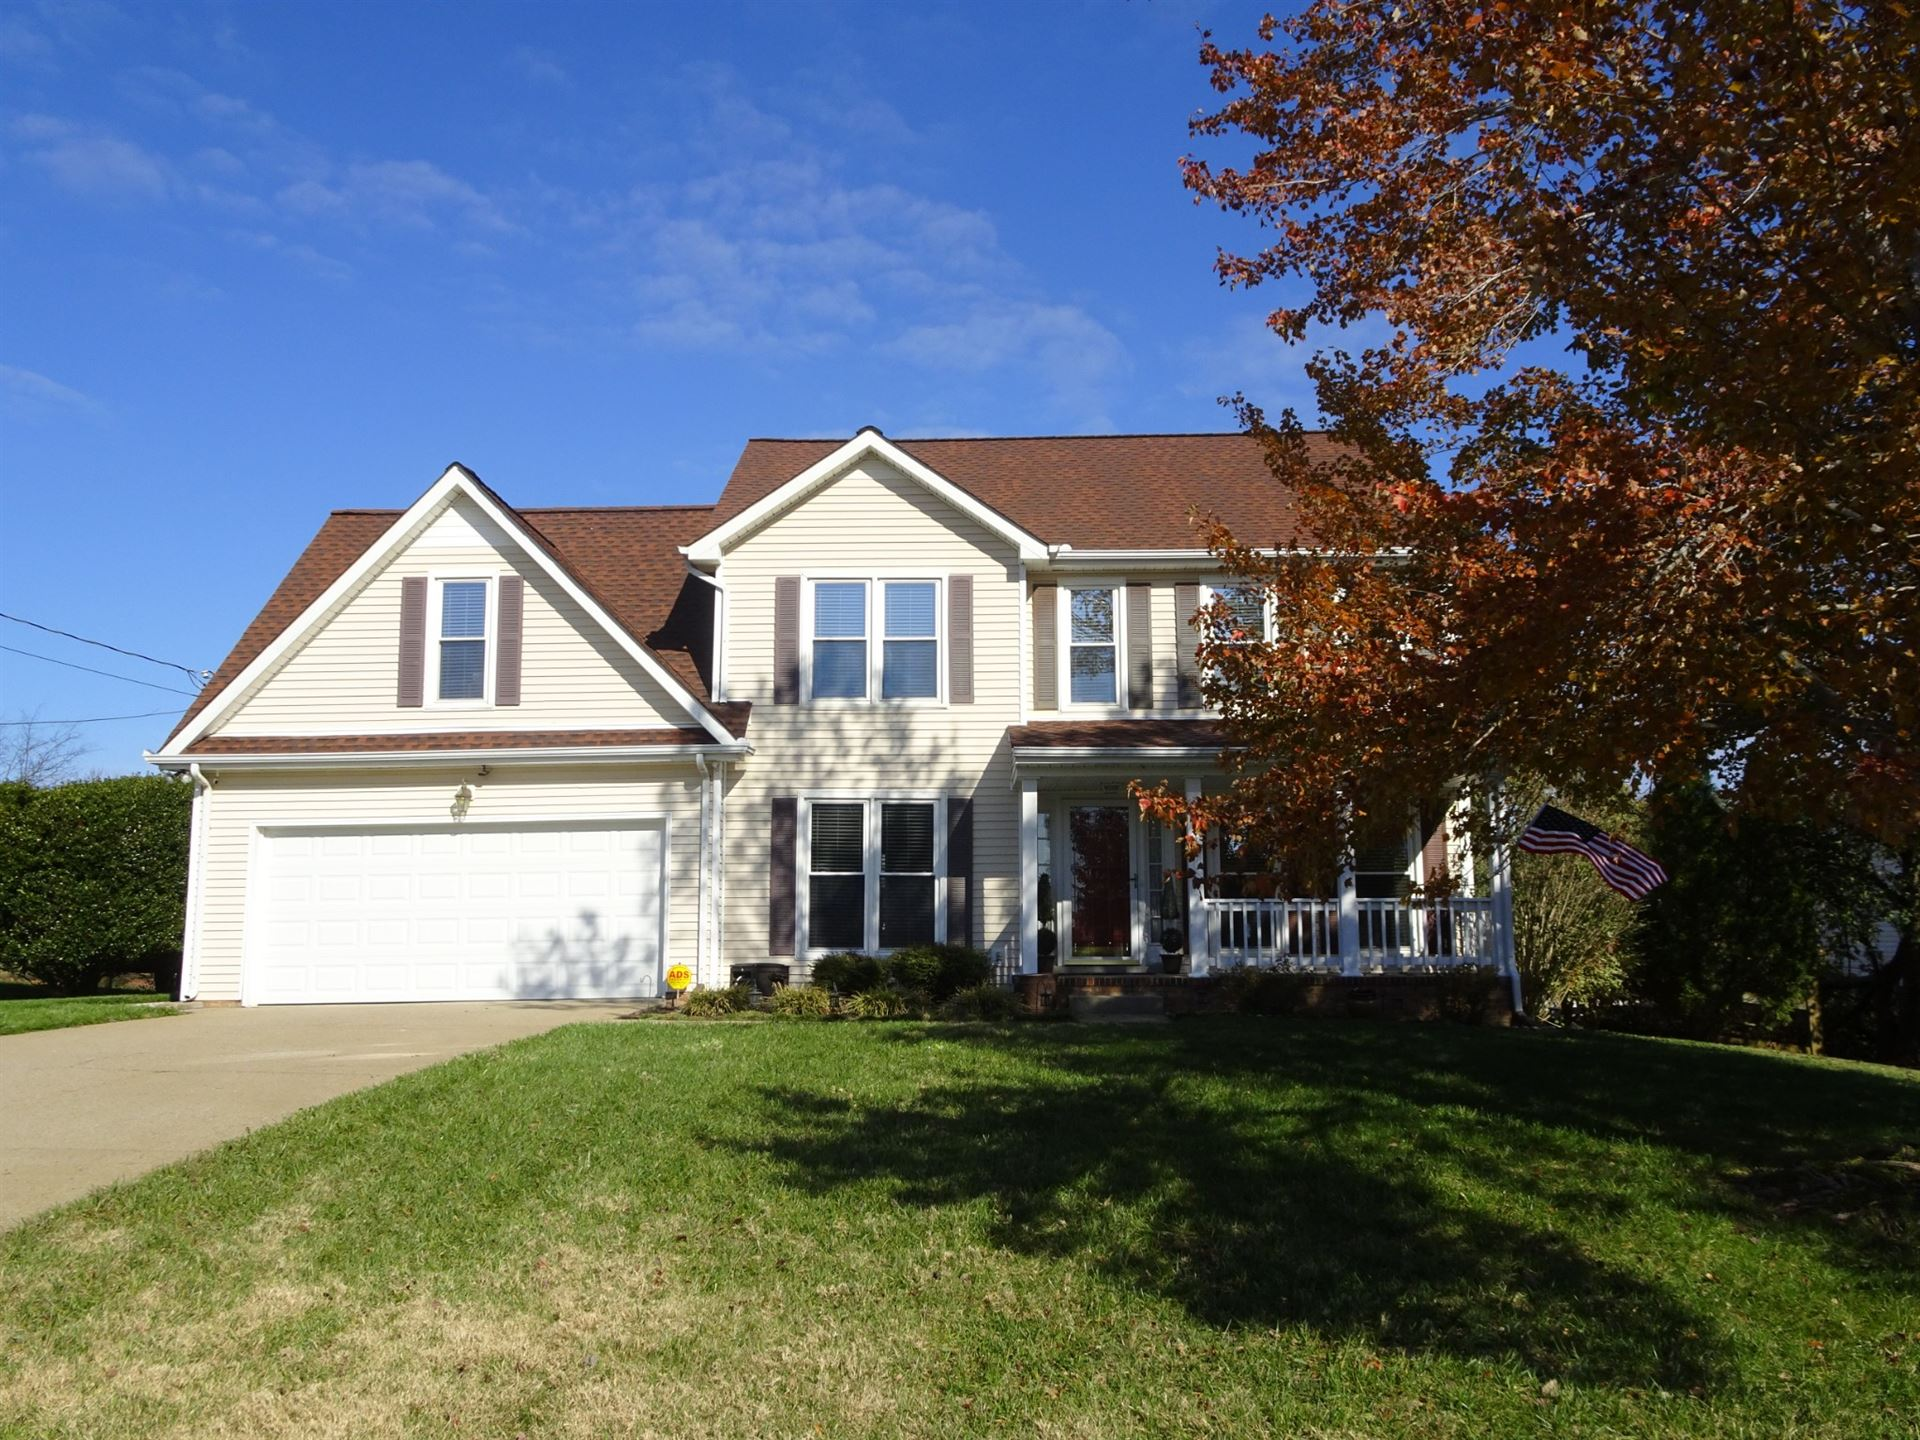 Property Image Of 2443 Artie Manning Road In Clarksville, Tn